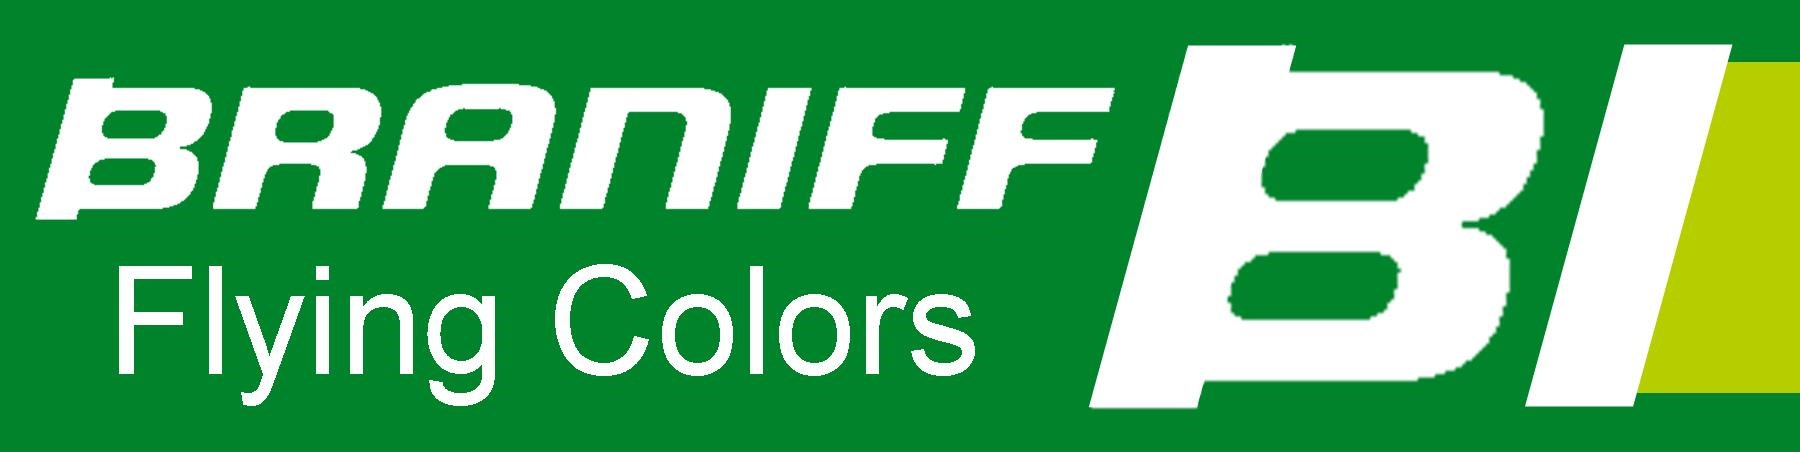 Braniff - Flying Colors - Green/Olive